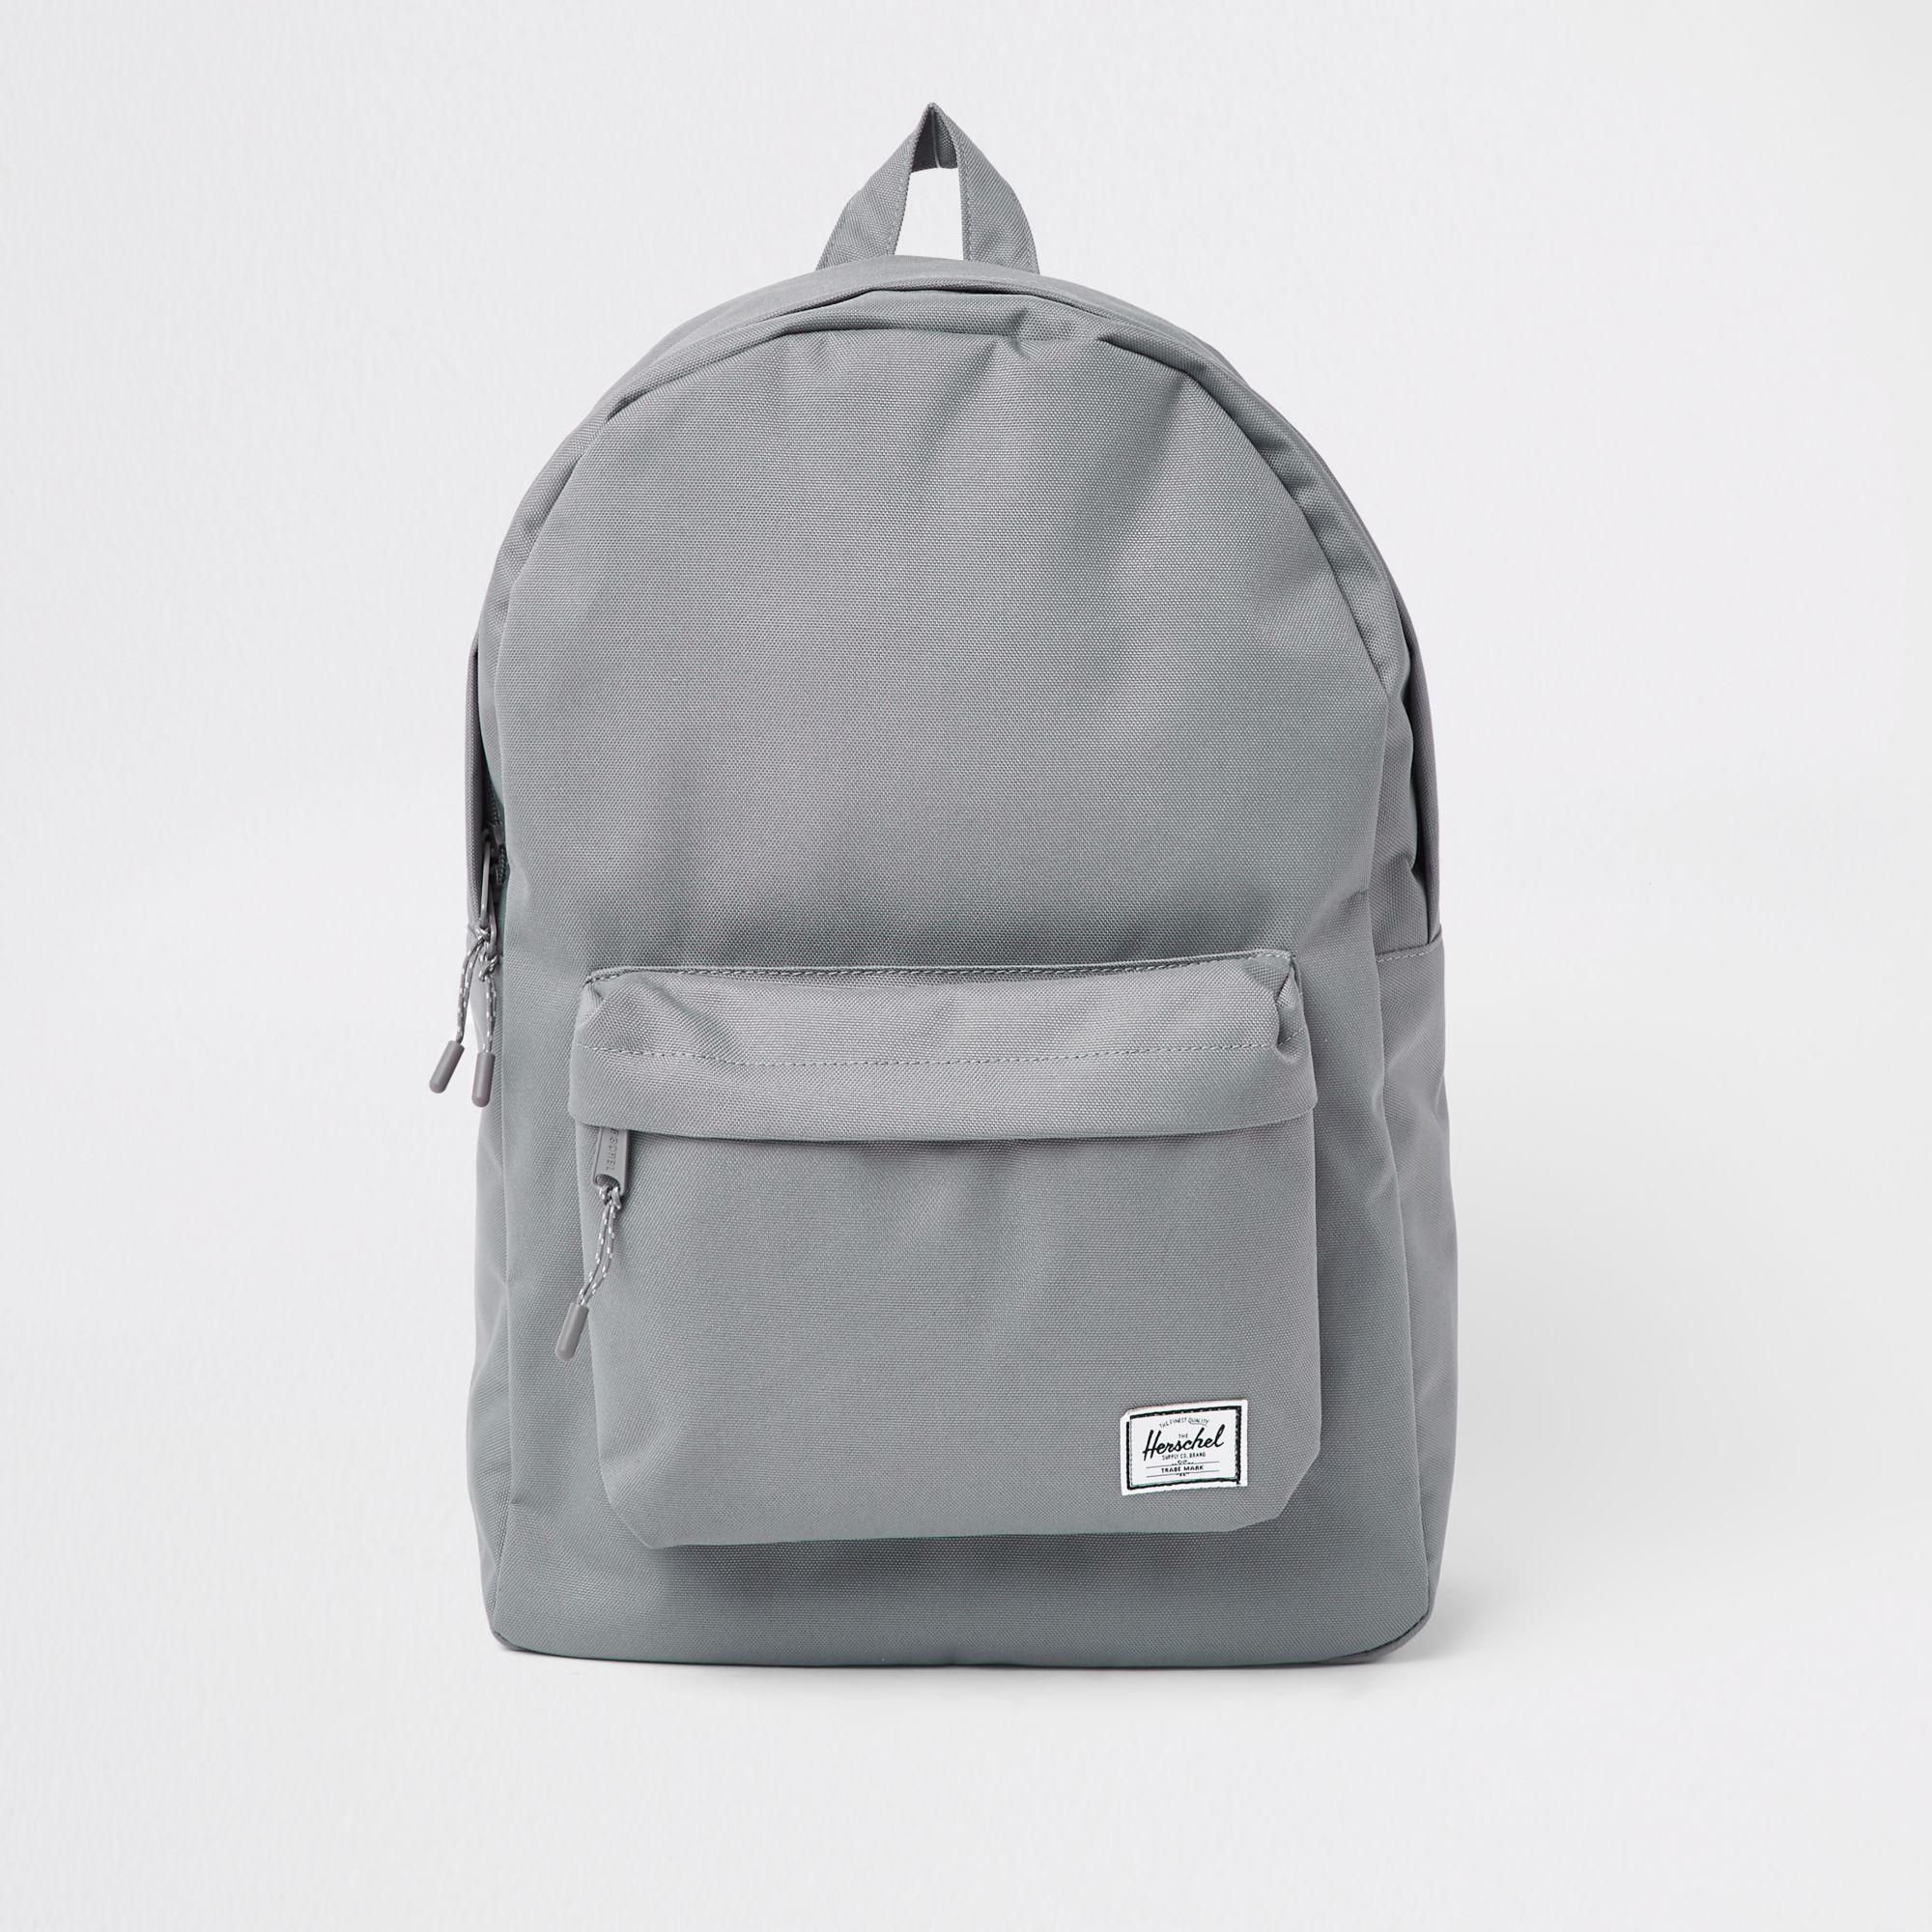 Herschel Supply Co. Classic Backpack in Gray for Men - Lyst 6fe26a8b506f9